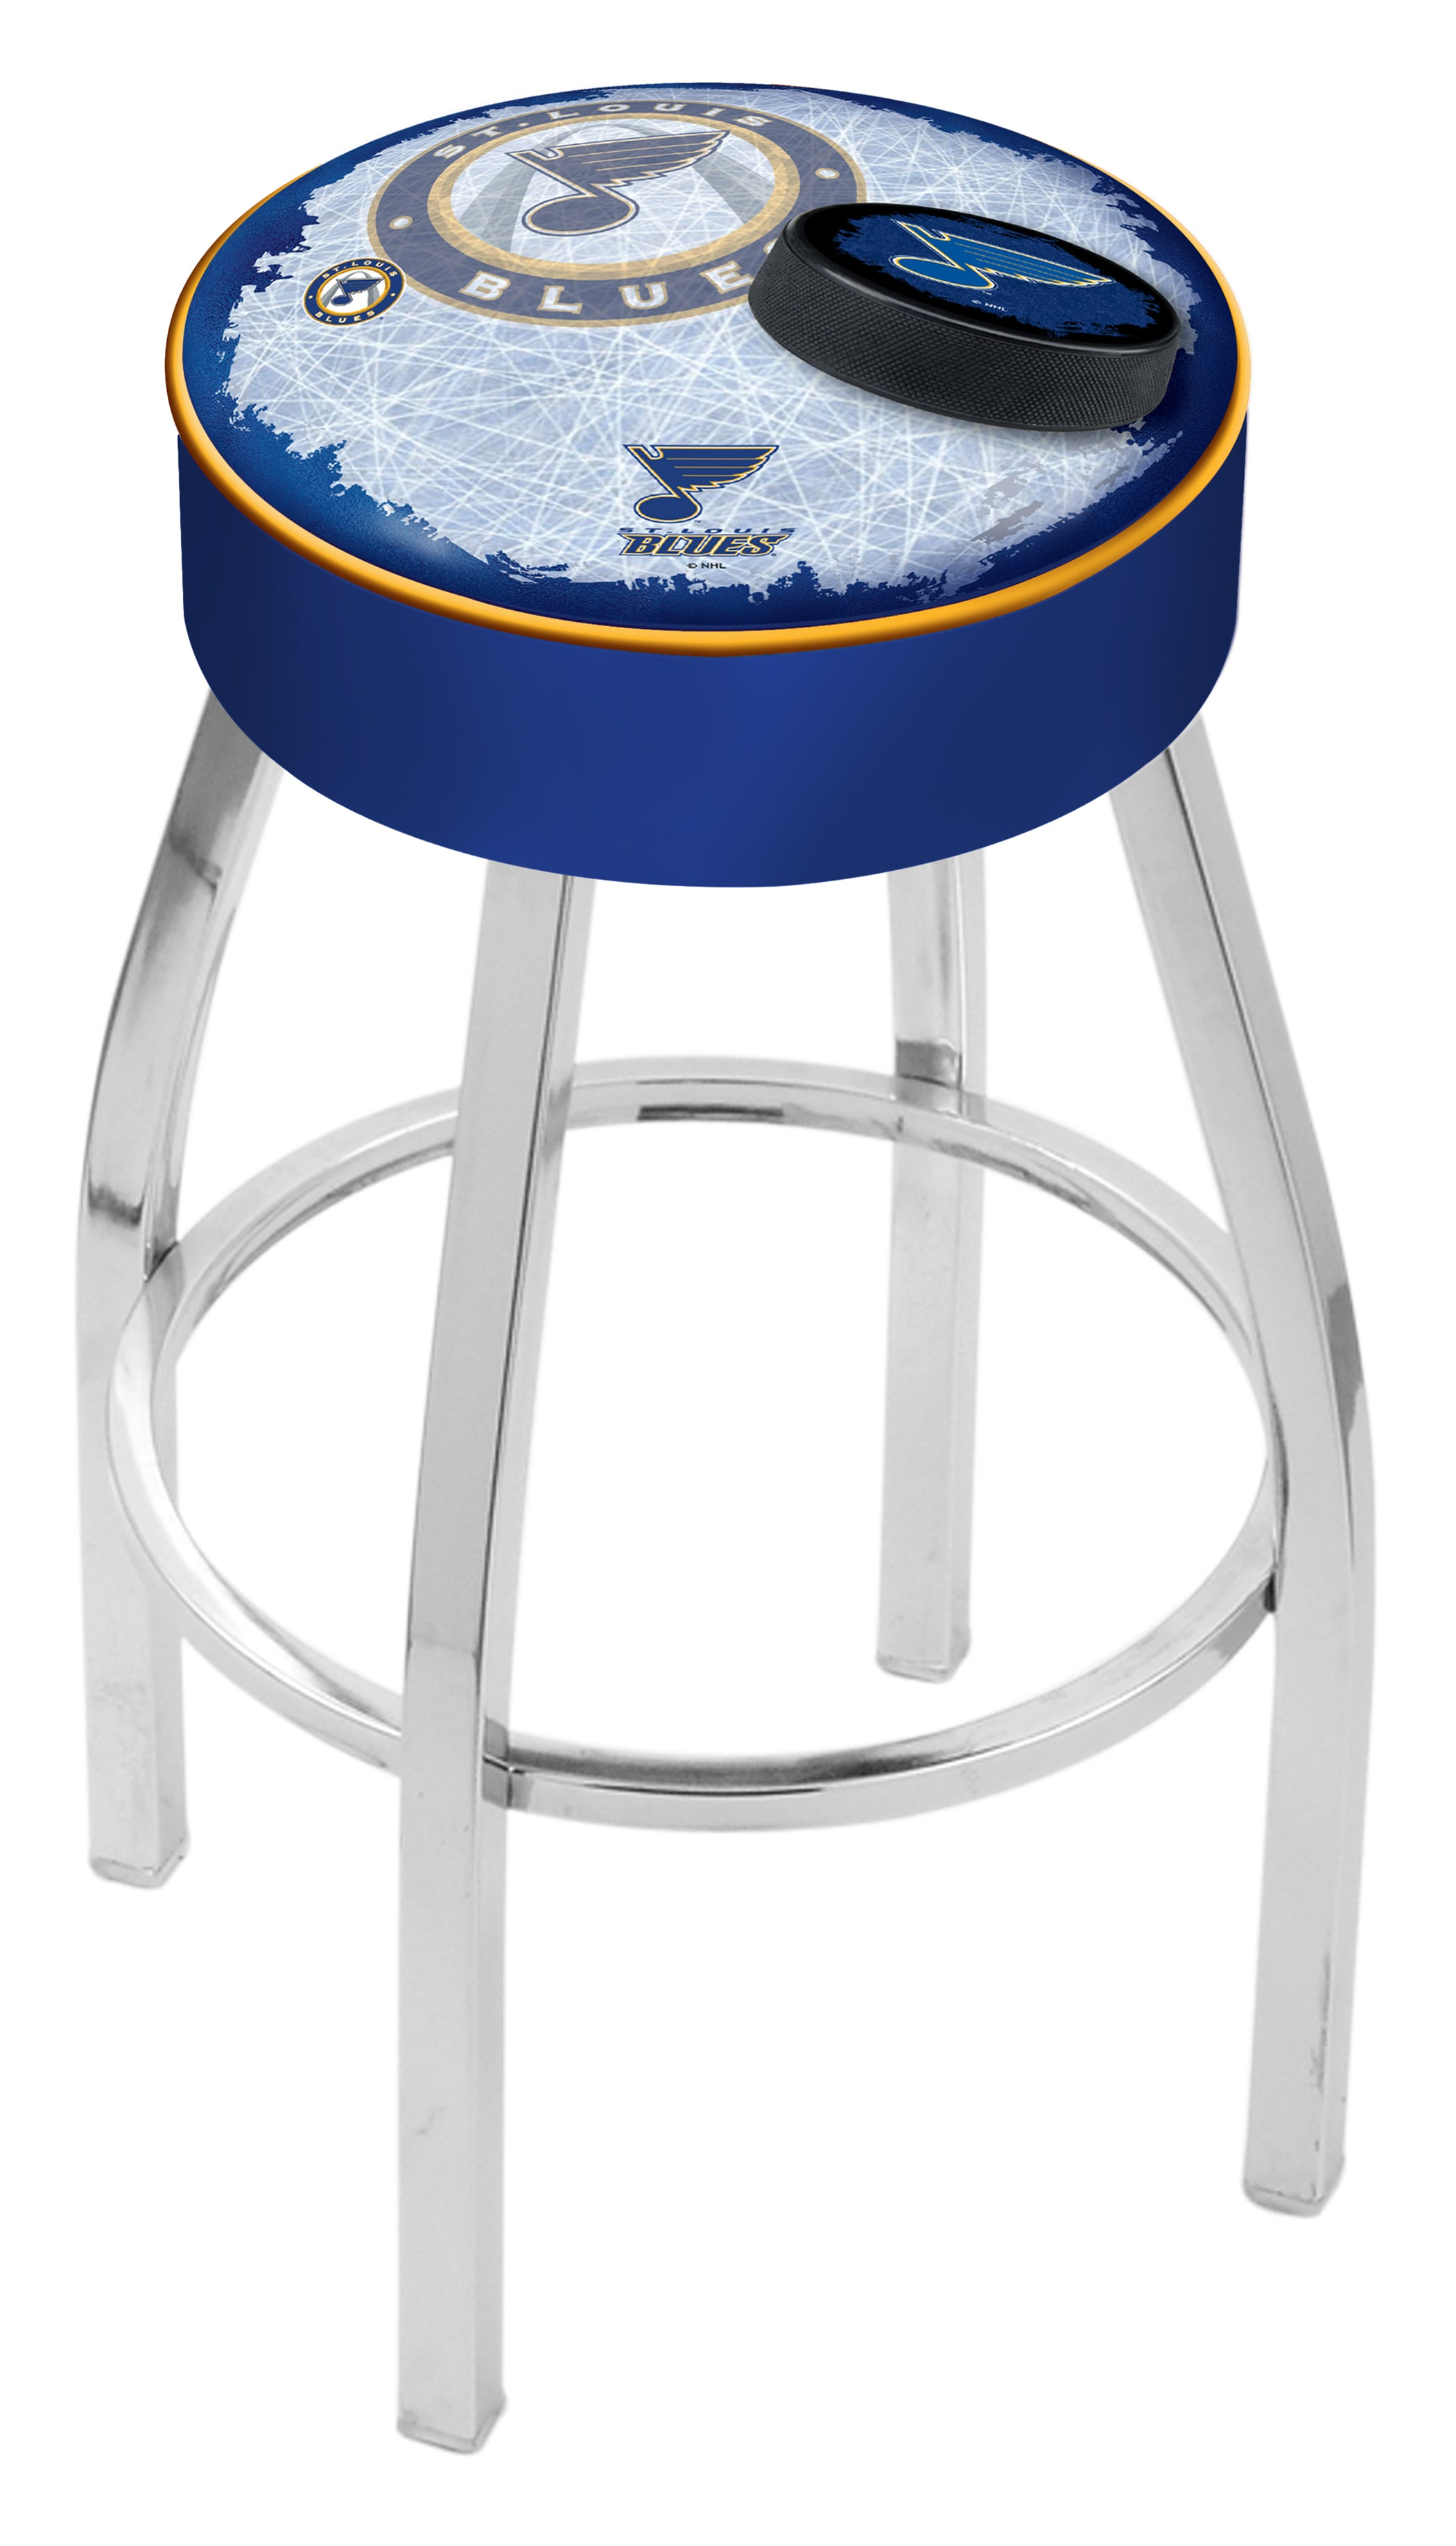 St Louis Blues Bar Stool w Official NHL Logo Family Leisure : L8C1STLBlu D2ubfk bp from www.familyleisure.com size 2100 x 3672 jpeg 318kB